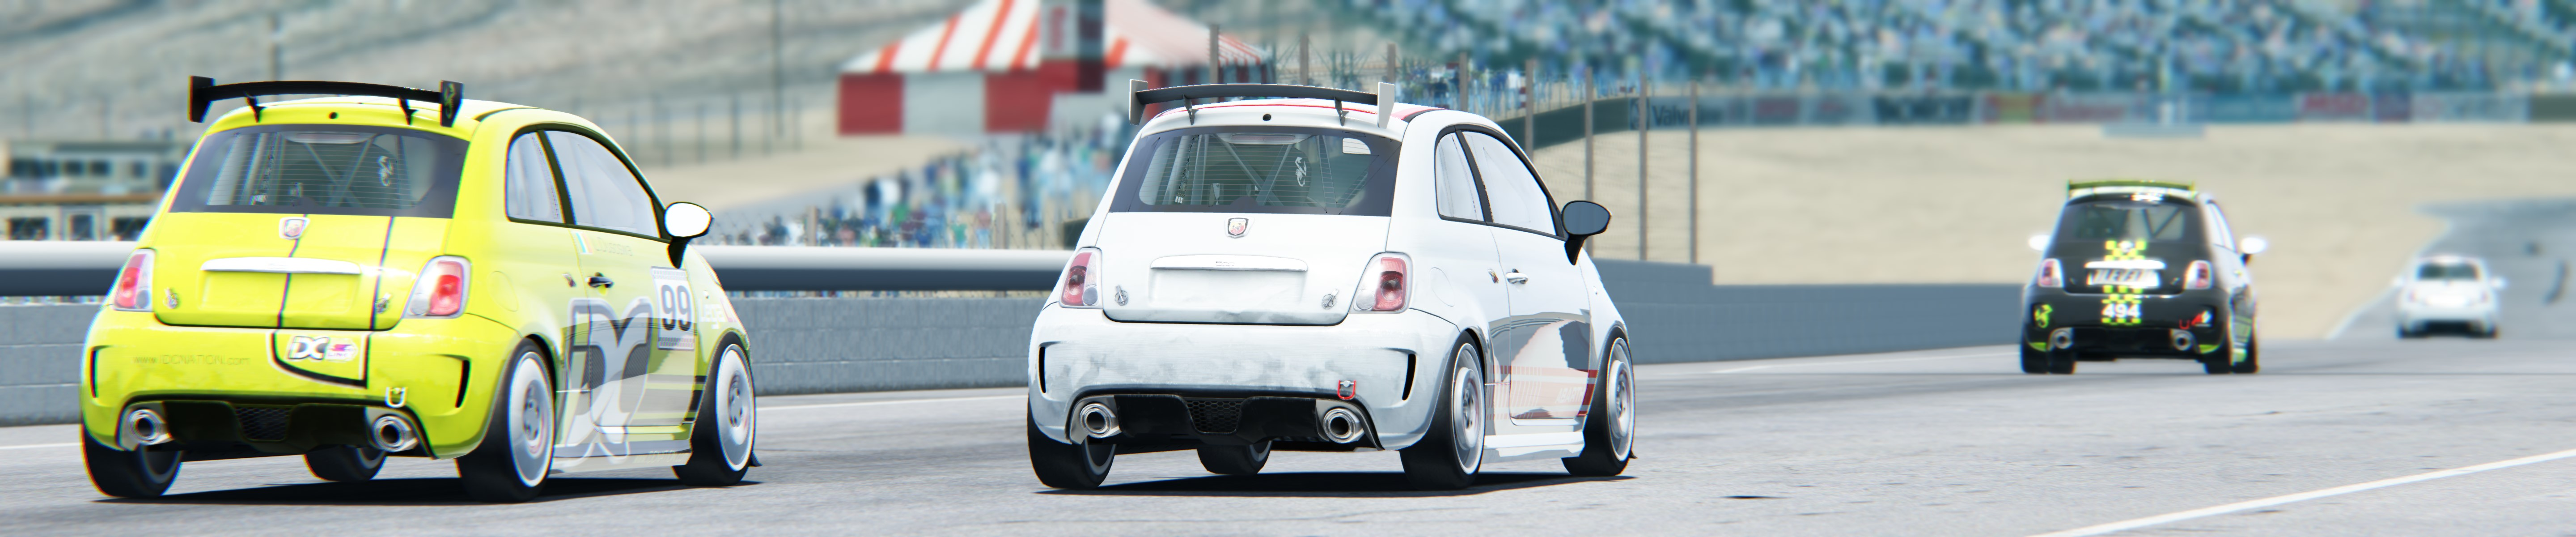 Screenshot_ks_abarth500_assetto_corse_riverside_18-2-117-0-2-10